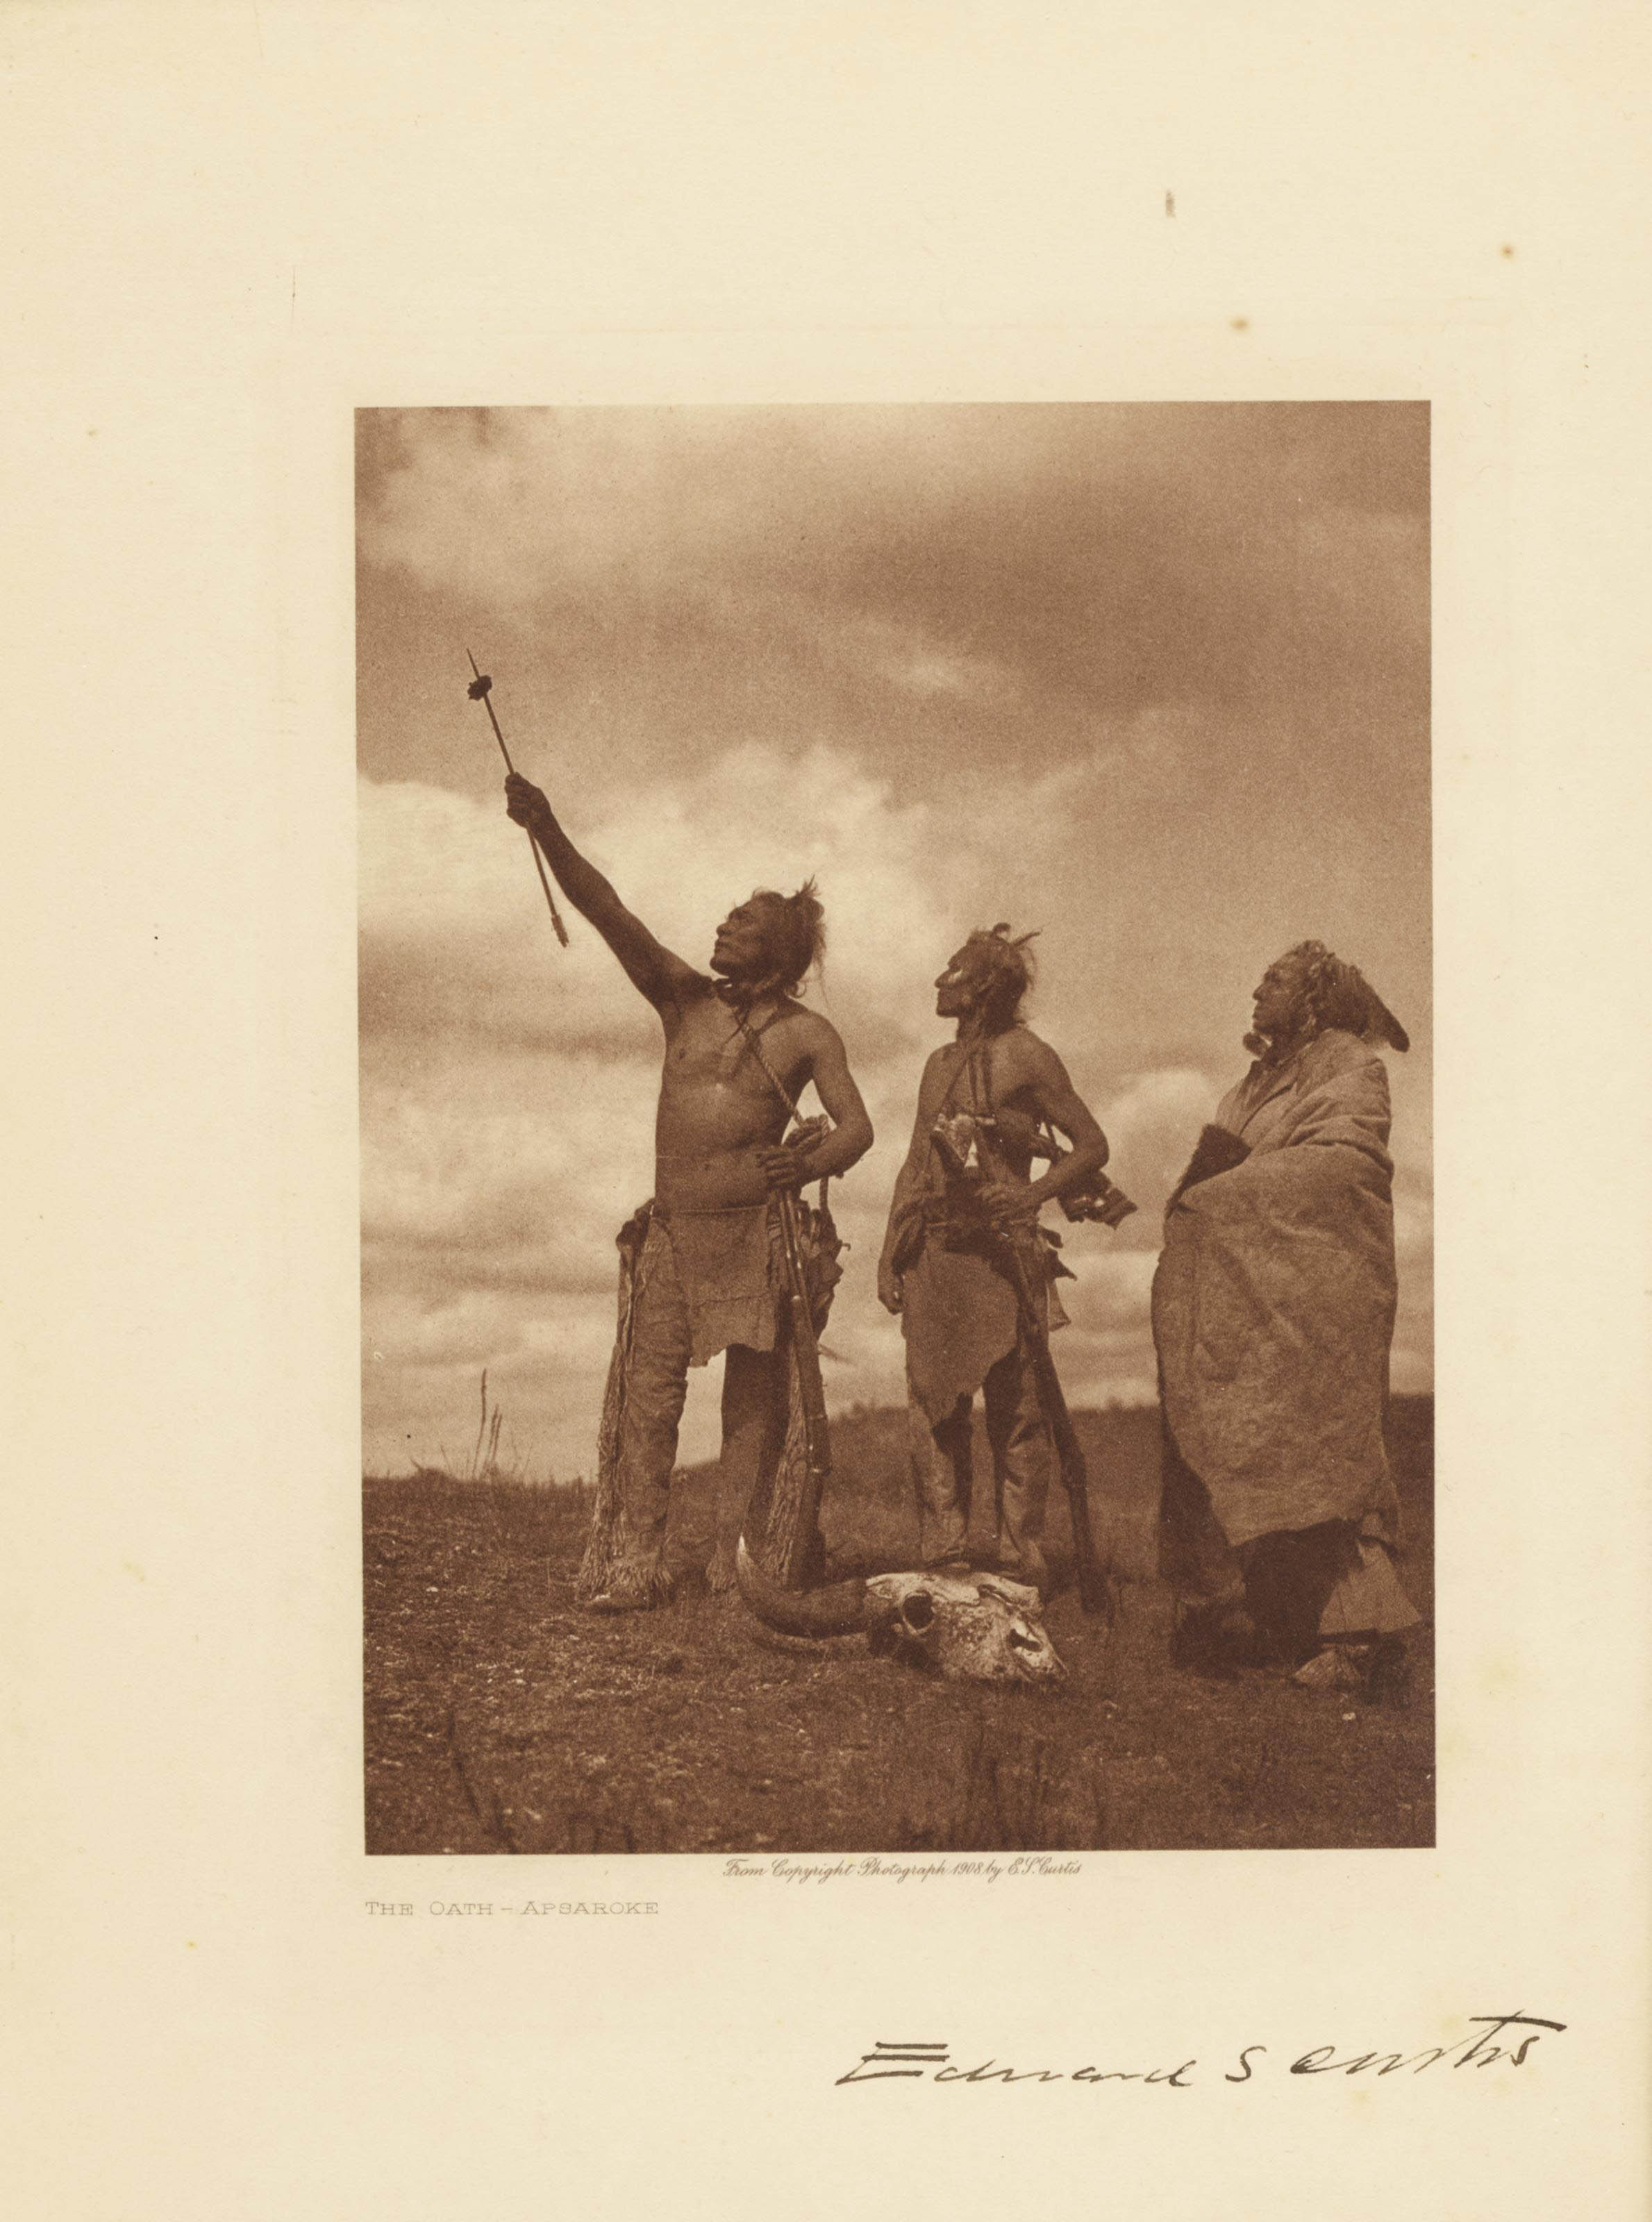 CURTIS, Edward S. (1868-1952). Prospectus for: The North American Indian, being a Series of Volumes Picturing and Describing the Indians of the United States and Alaska. [Cambridge, Mass.], 1907.